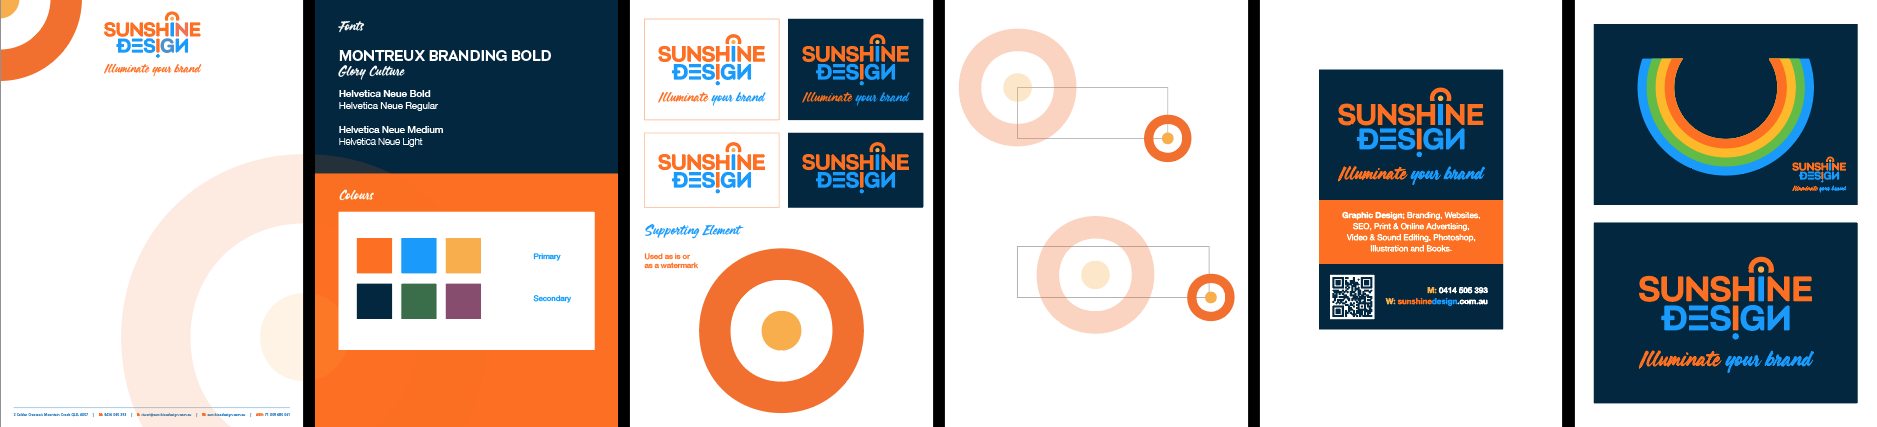 Style guide for logos and branding - Sunshine Coast graphic designer